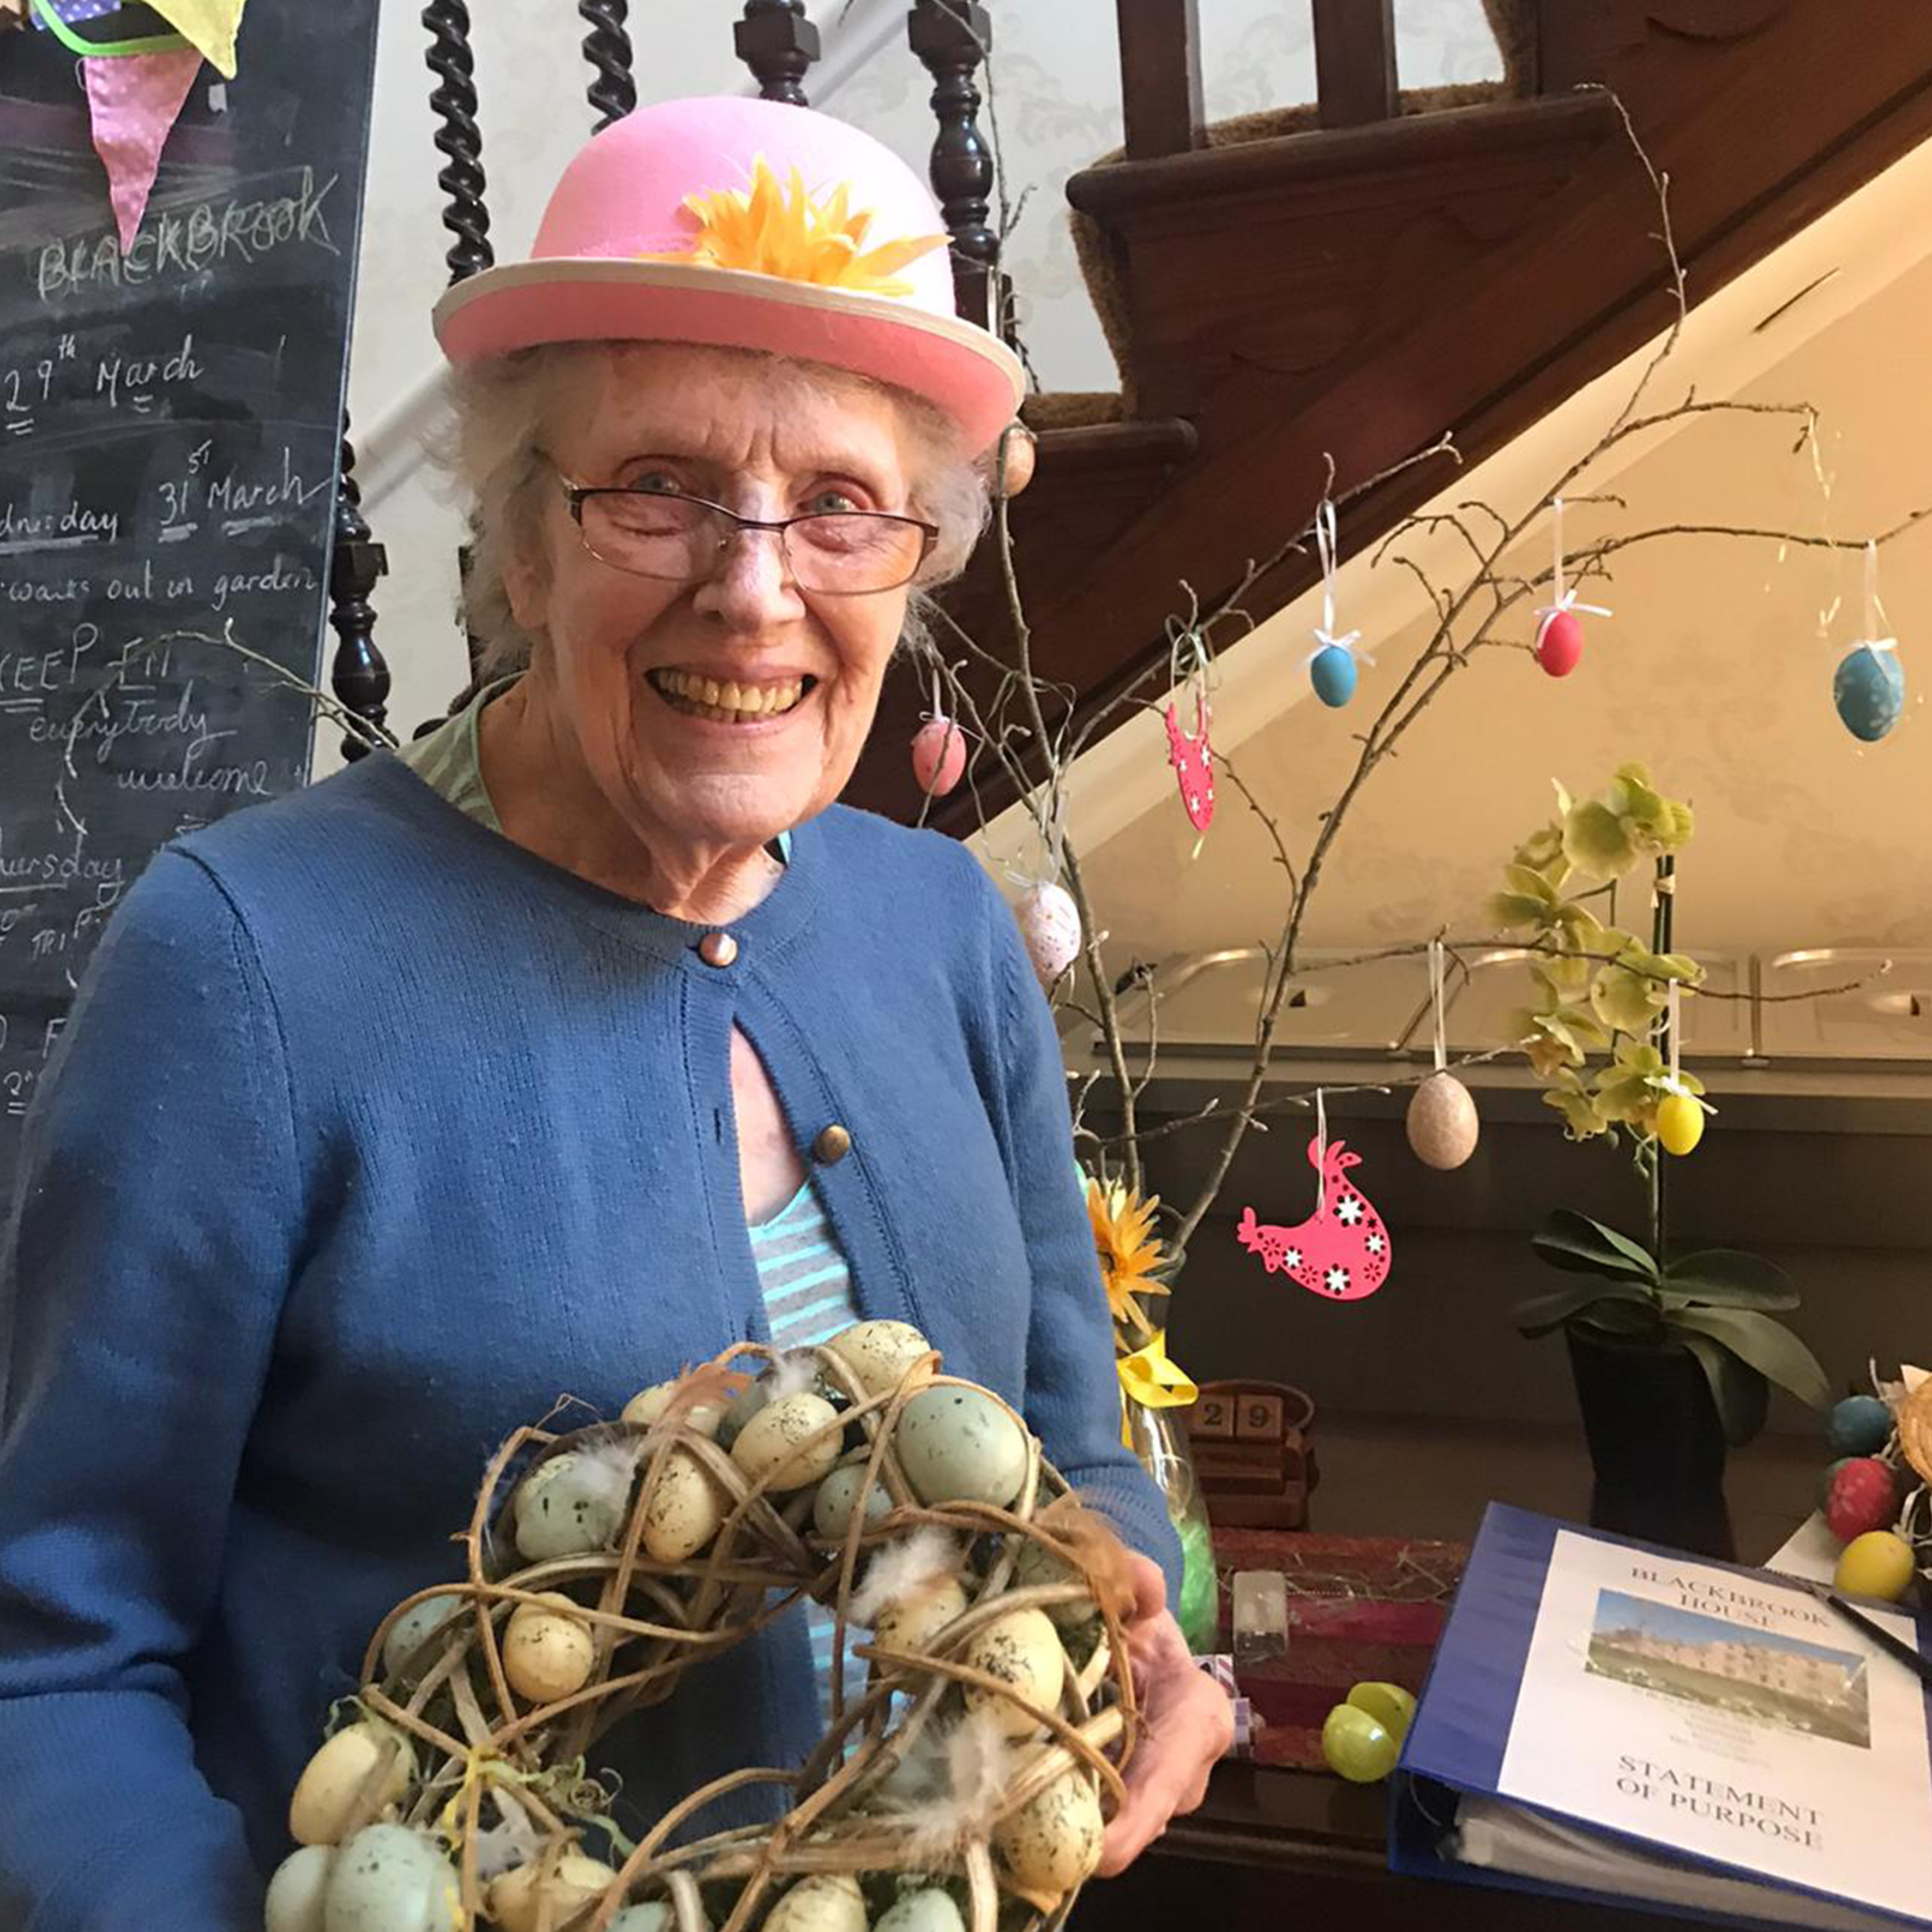 Preparing the Easter decorations at Blackbrook House